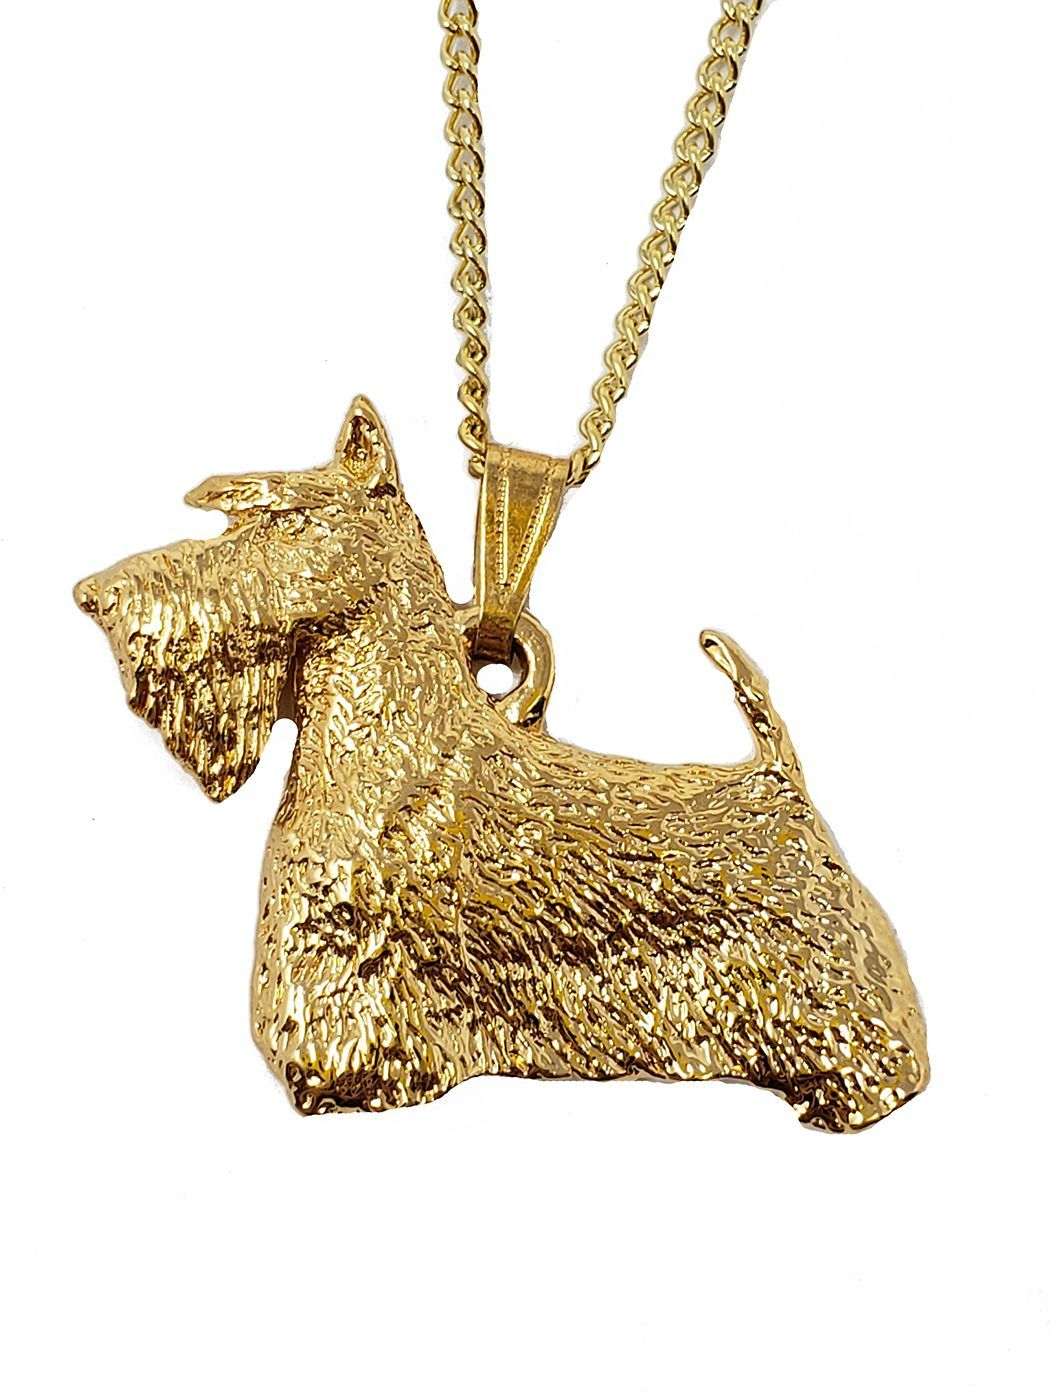 Scottish Terrier 24K Gold Plated Pendant with Necklace